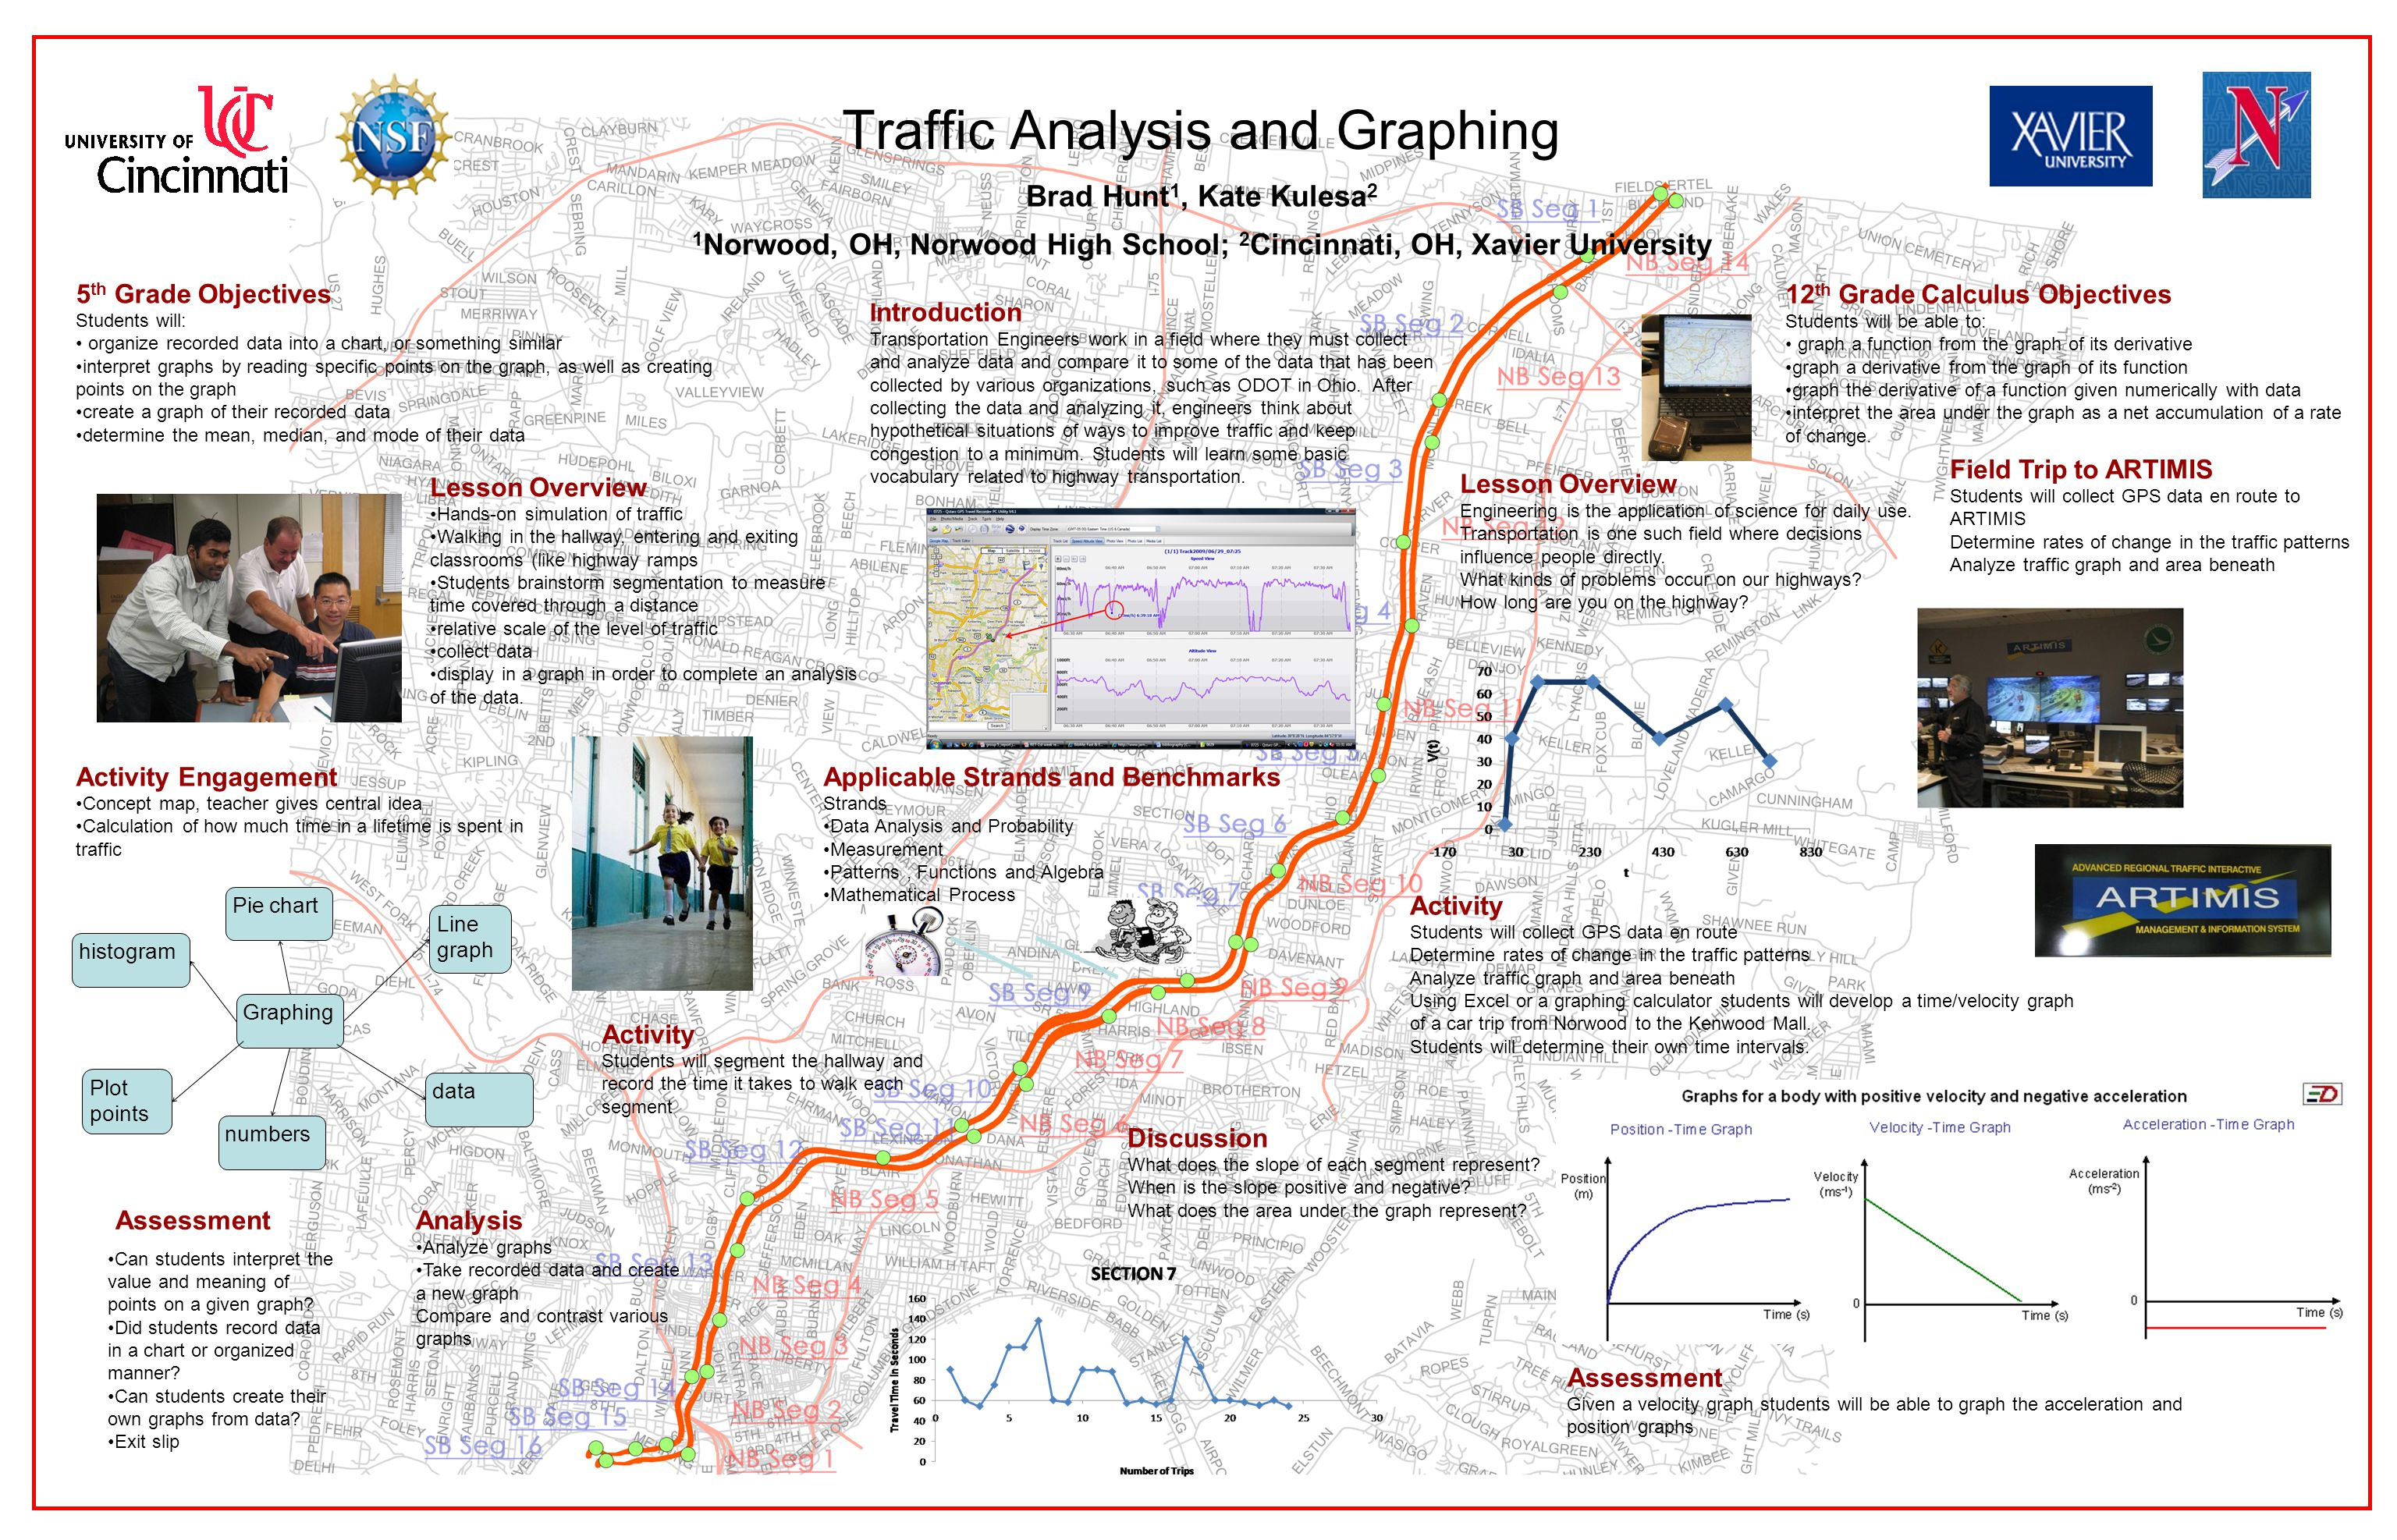 Traffic Analysis and Graphing 5 th Grade Objectives Students will: organize recorded data into a chart, or something similar interpret graphs by reading specific points on the graph, as well as creating points on the graph create a graph of their recorded data determine the mean, median, and mode of their data Applicable Strands and Benchmarks Strands Data Analysis and Probability Measurement Patterns, Functions and Algebra Mathematical Process Brad Hunt 1, Kate Kulesa 2 1 Norwood, OH, Norwood High School; 2 Cincinnati, OH, Xavier University 12 th Grade Calculus Objectives Students will be able to: graph a function from the graph of its derivative graph a derivative from the graph of its function graph the derivative of a function given numerically with data interpret the area under the graph as a net accumulation of a rate of change.